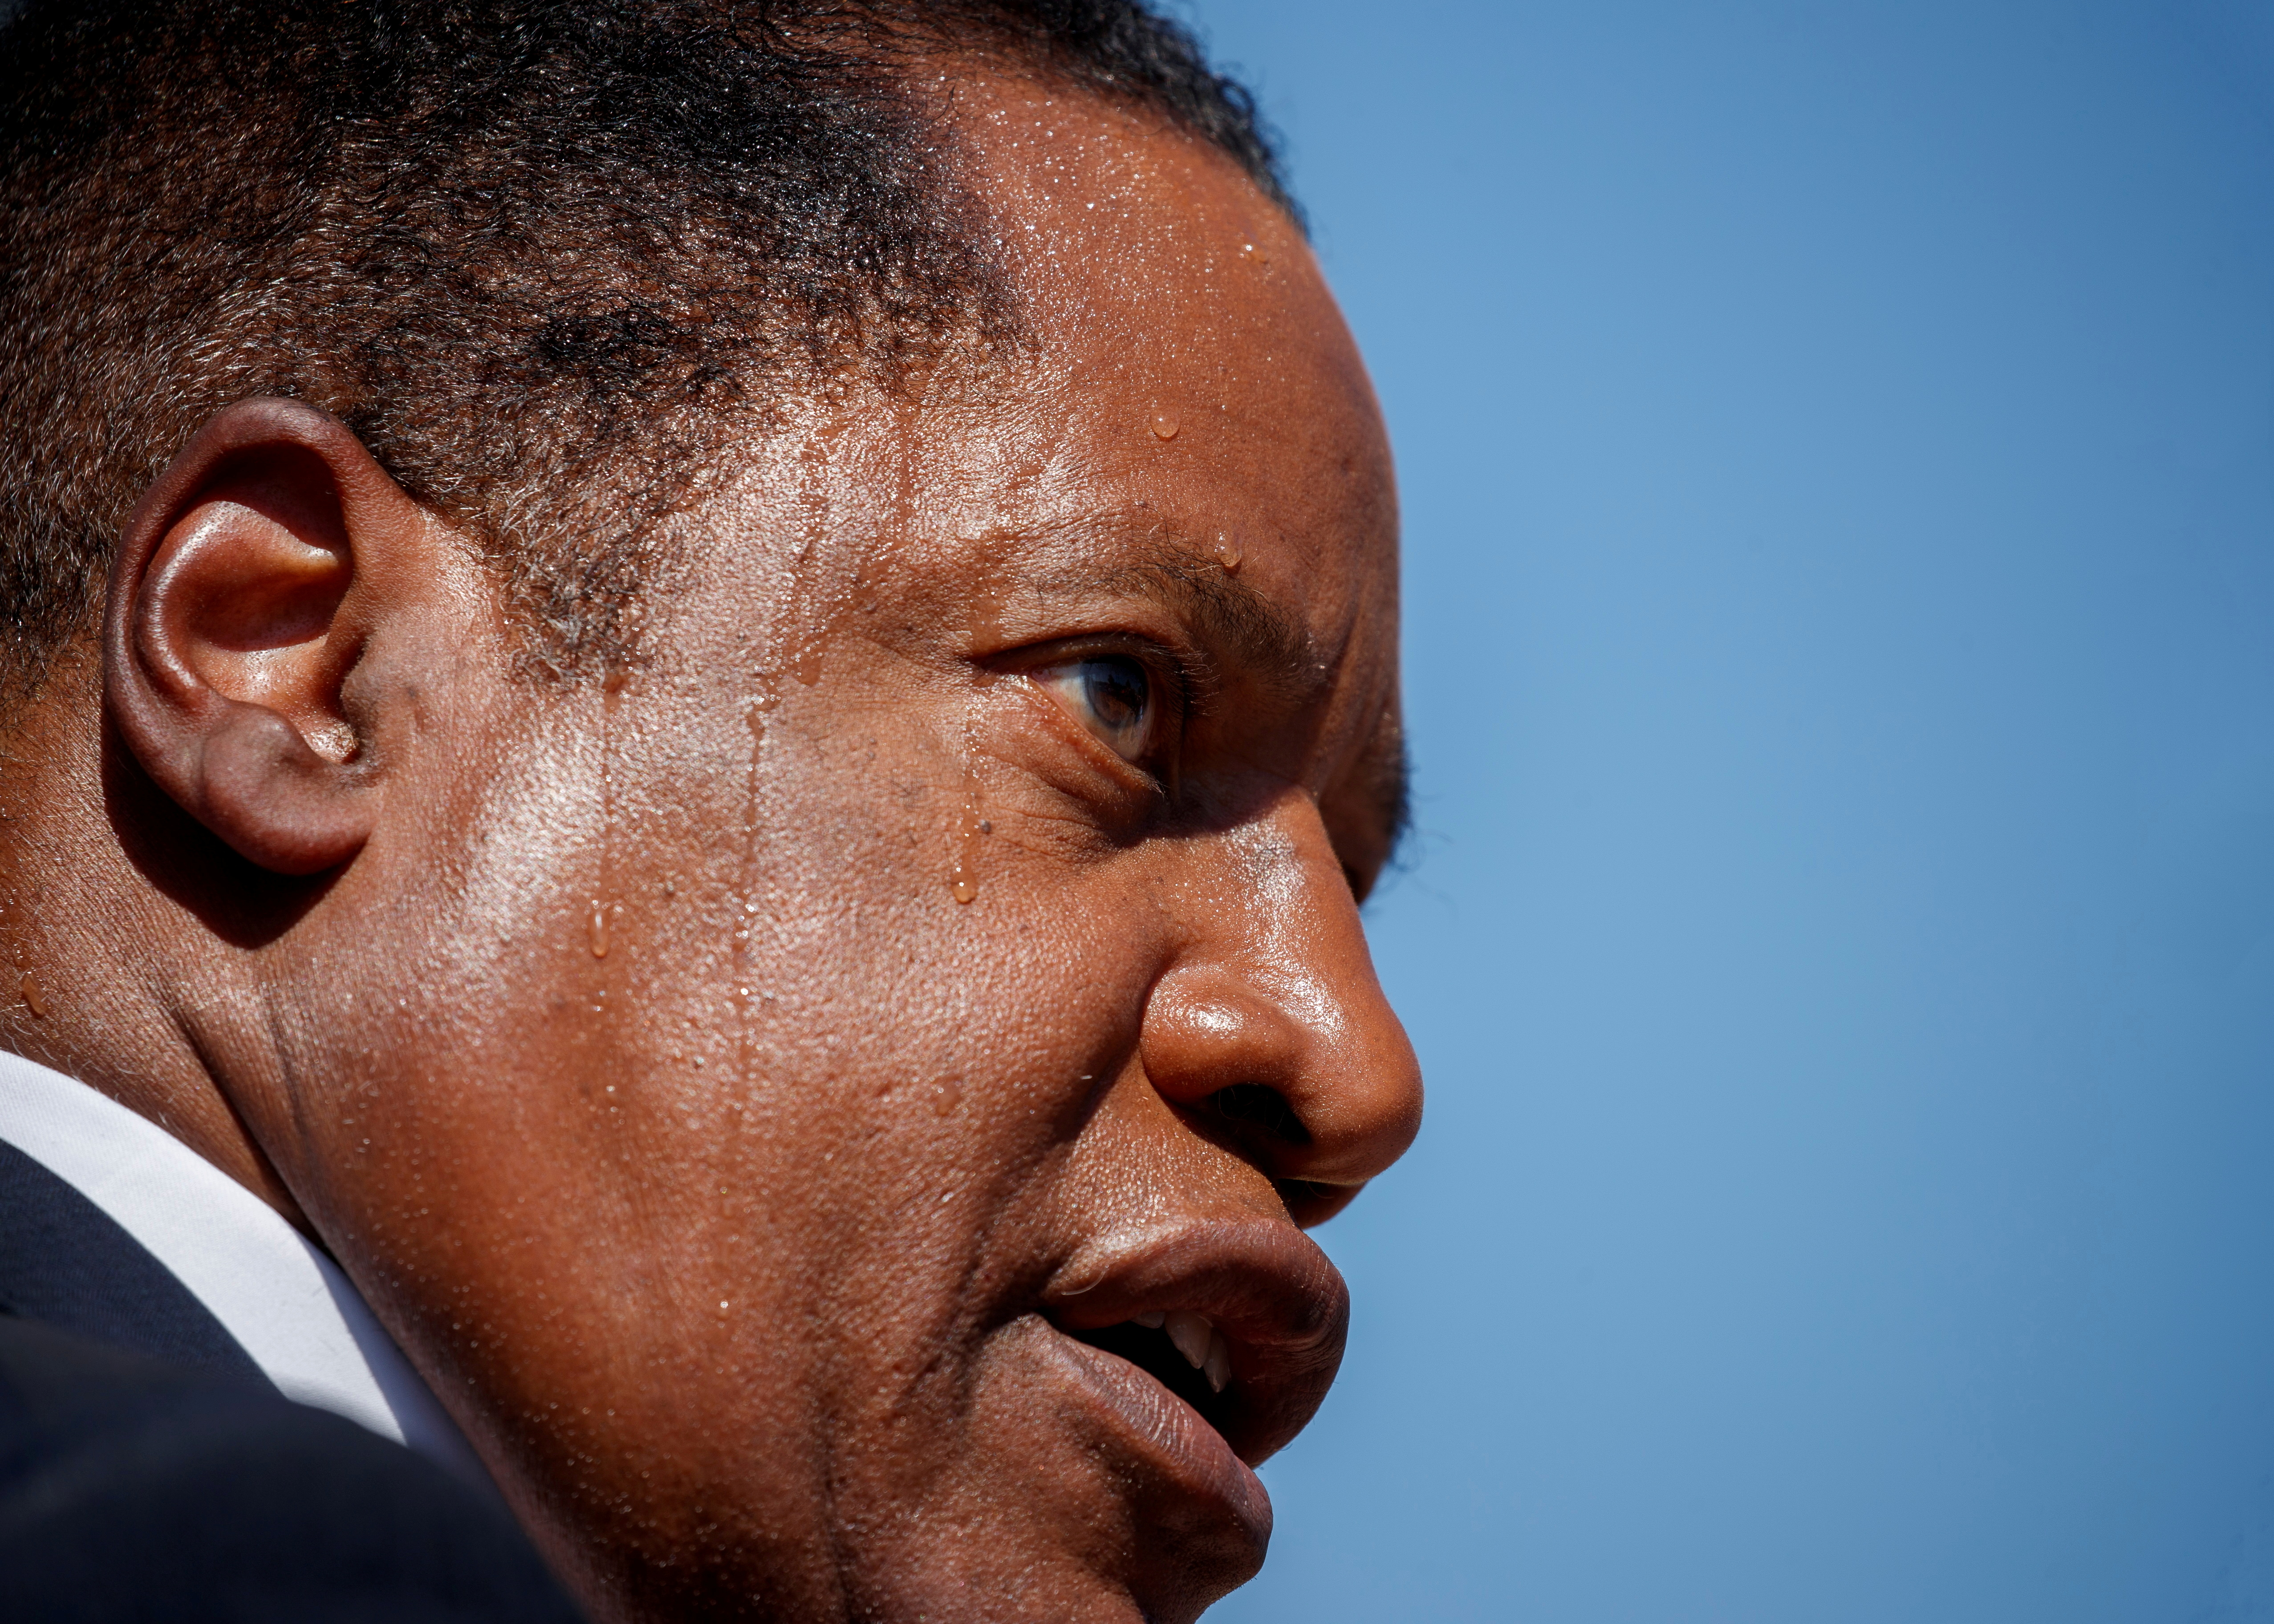 Gubernatorial recall candidate Larry Elder sweats in the heat as he speaks during a campaign stop during the recall election of governor Gavin Newsom in Monterey Park, California, U.S., September 13, 2021.  REUTERS/Mike Blake/File Photo